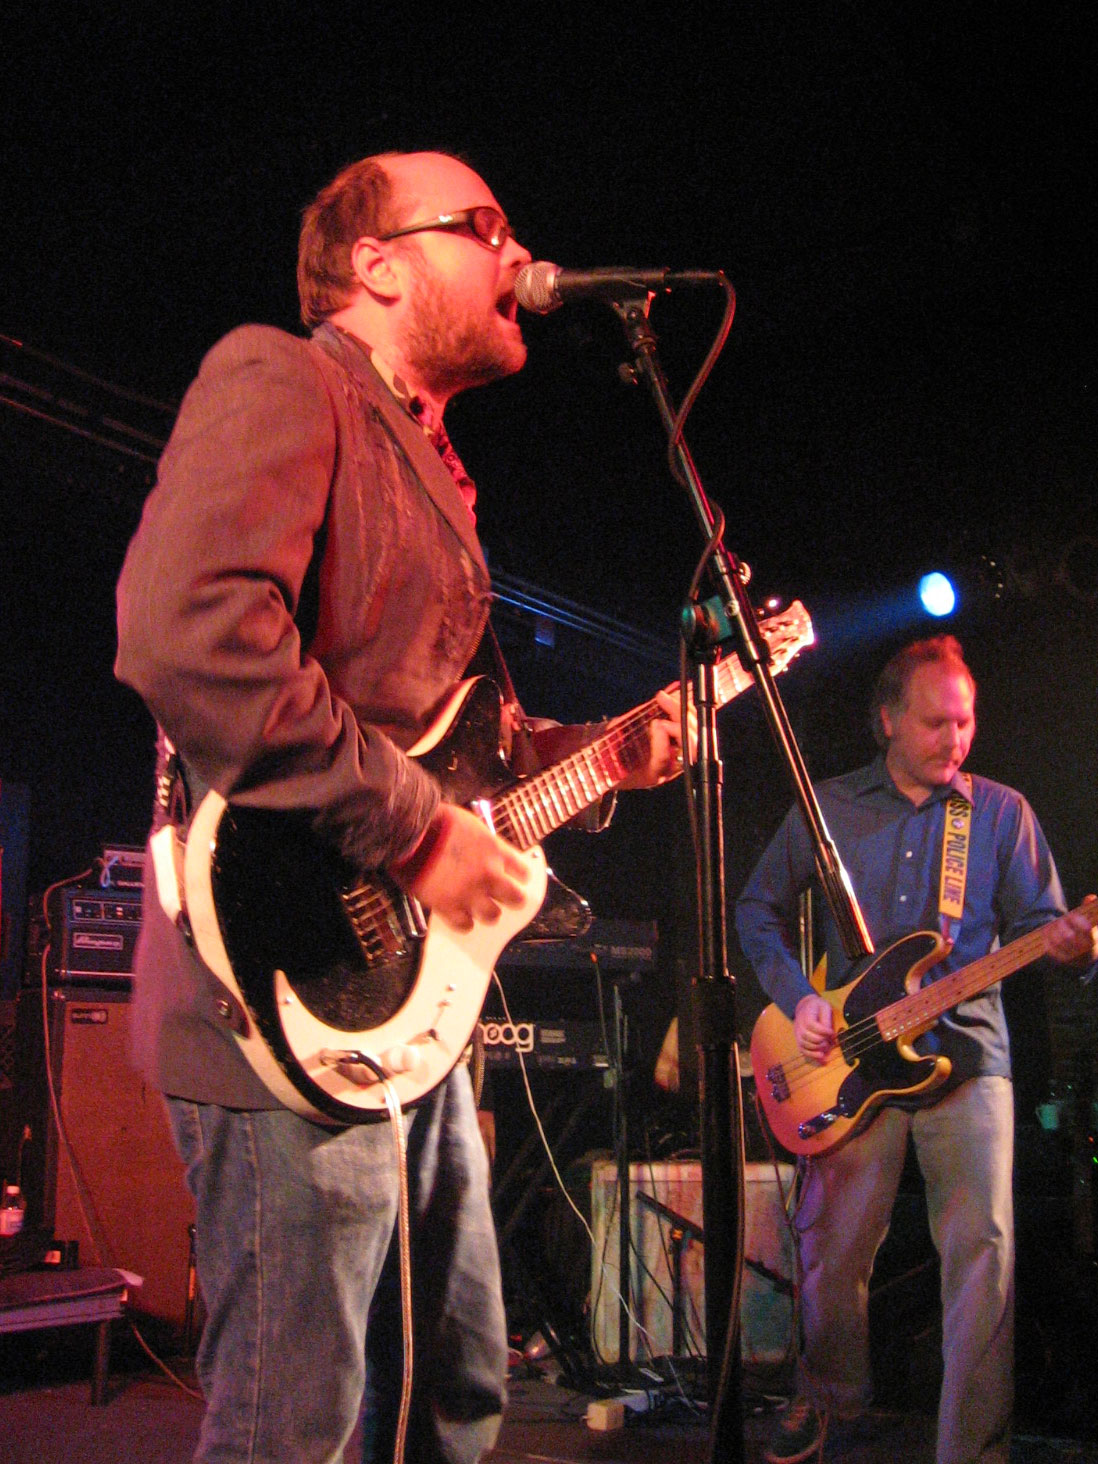 Schneider performing at [[The Black Cat (nightclub)|The Black Cat nightclub]] on October 20, 2006